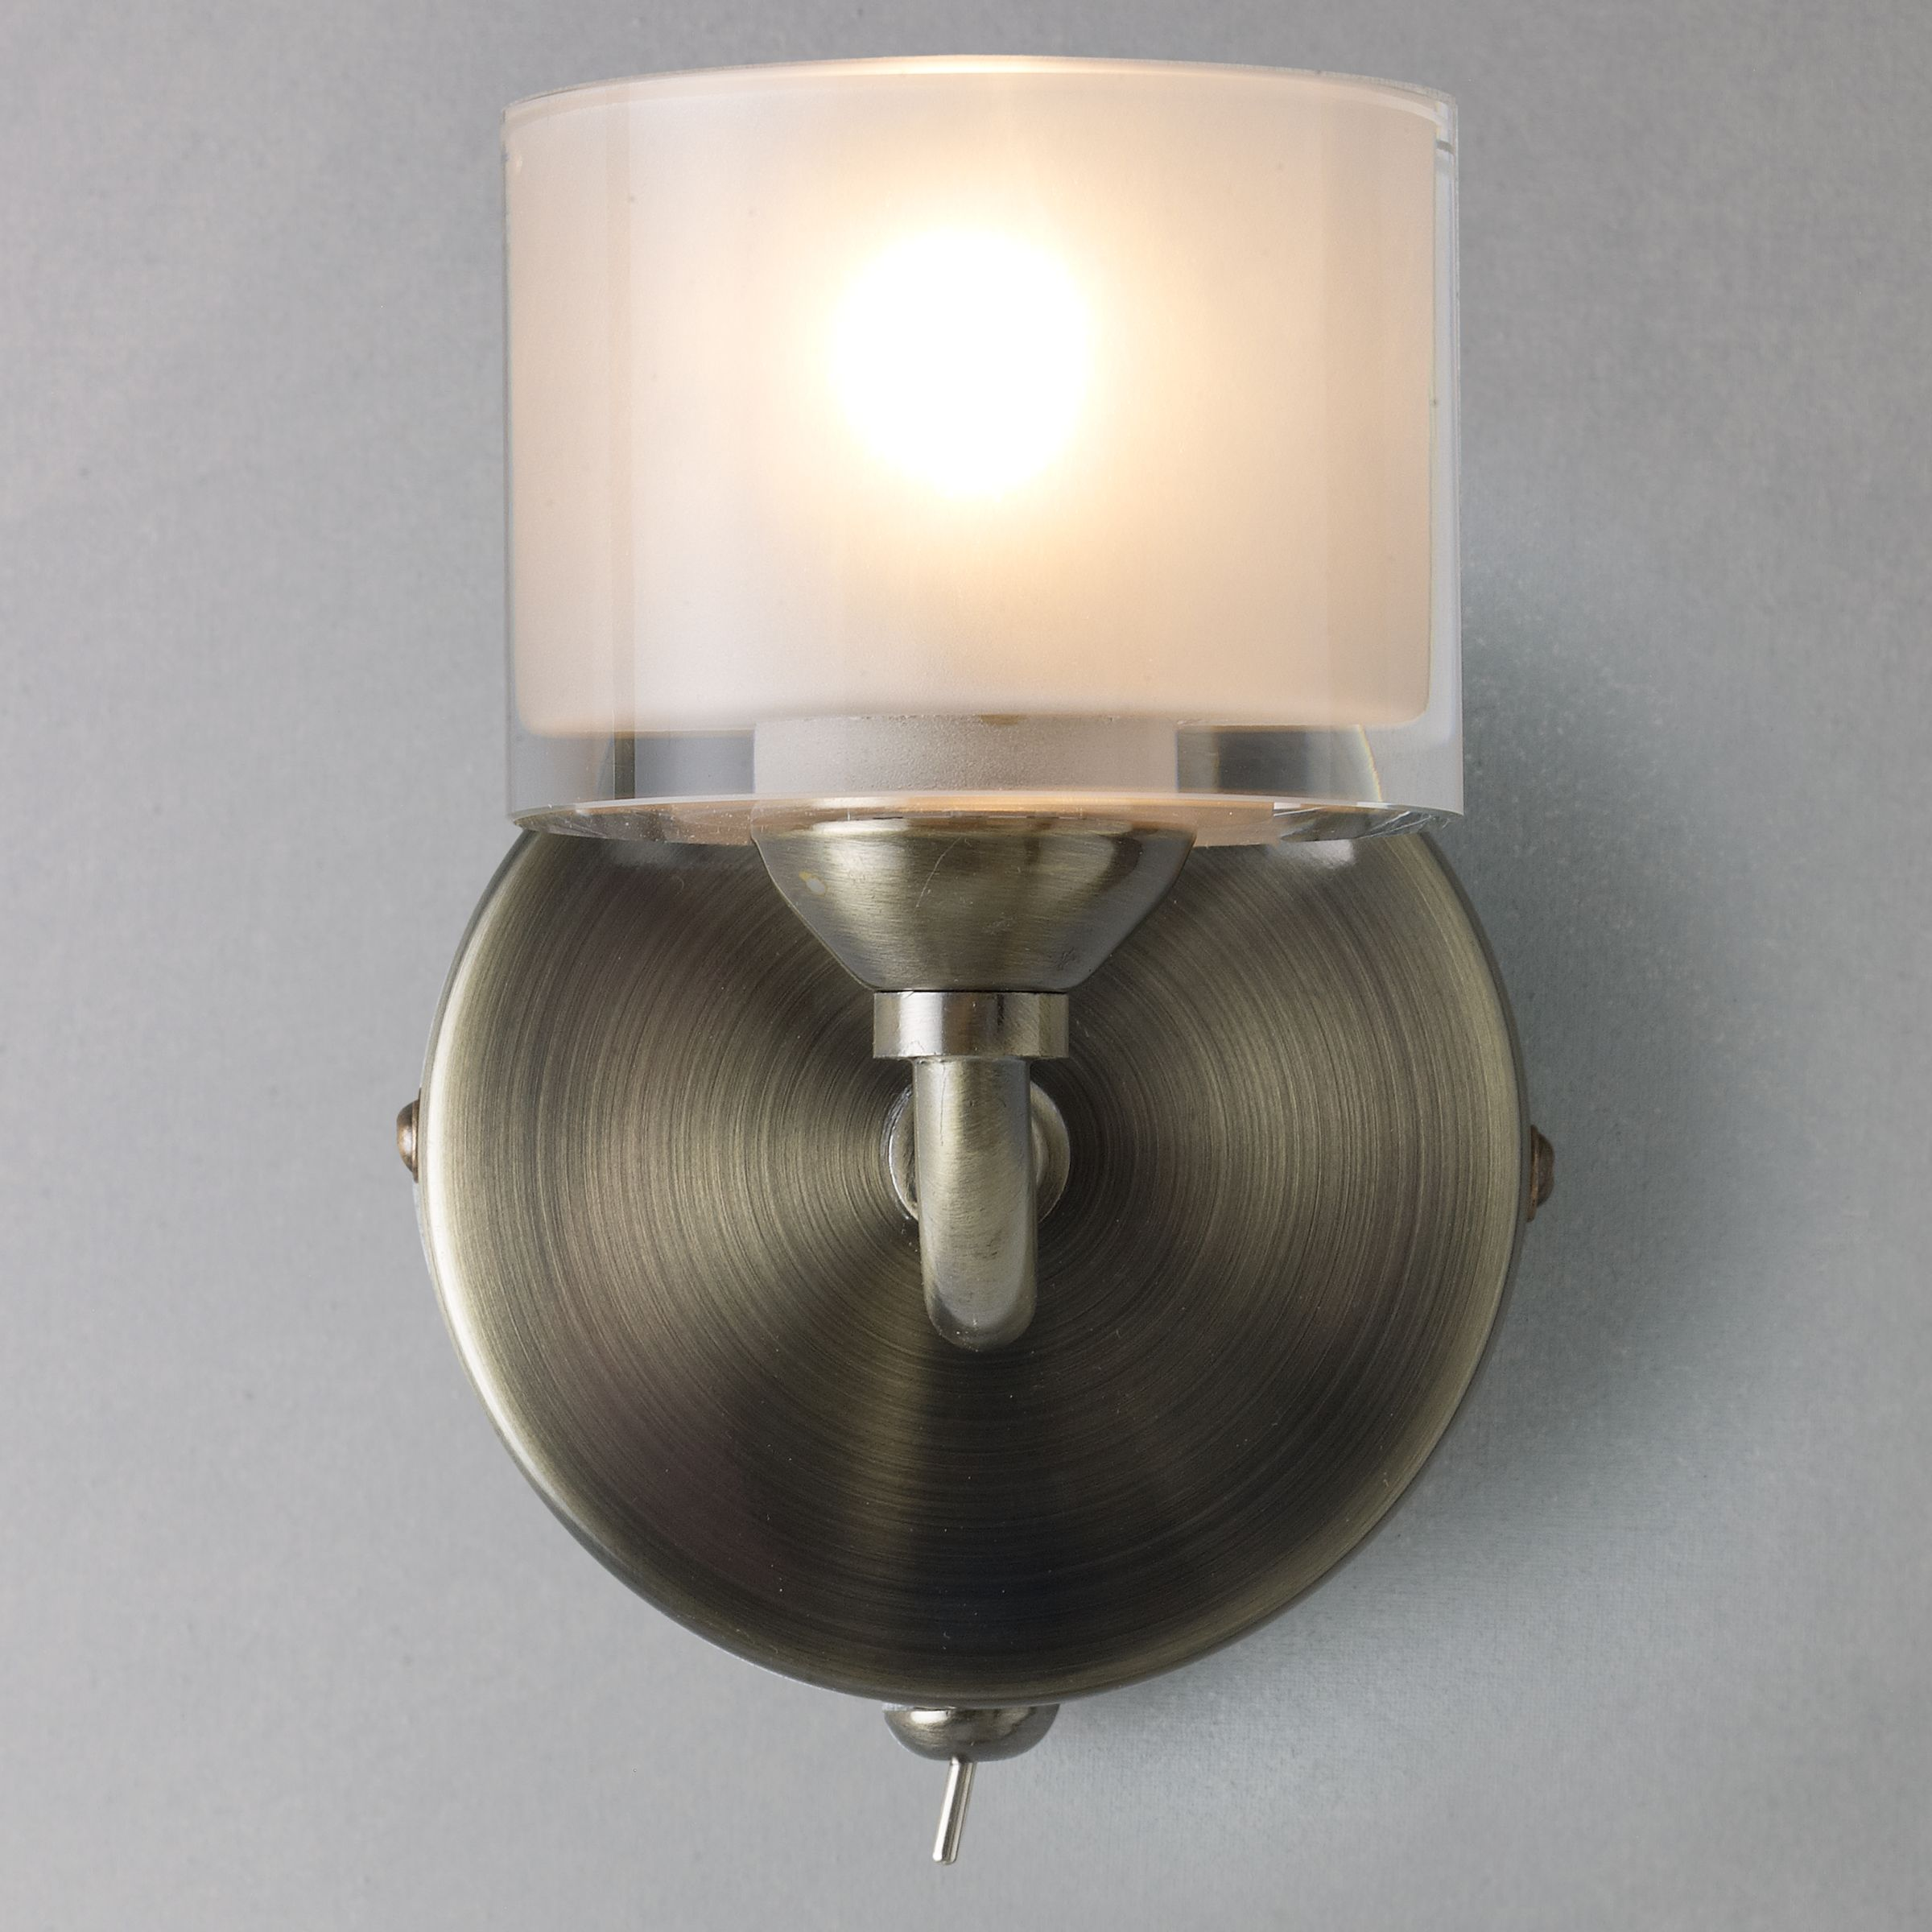 Buy John Lewis Paige Single Wall Light John Lewis